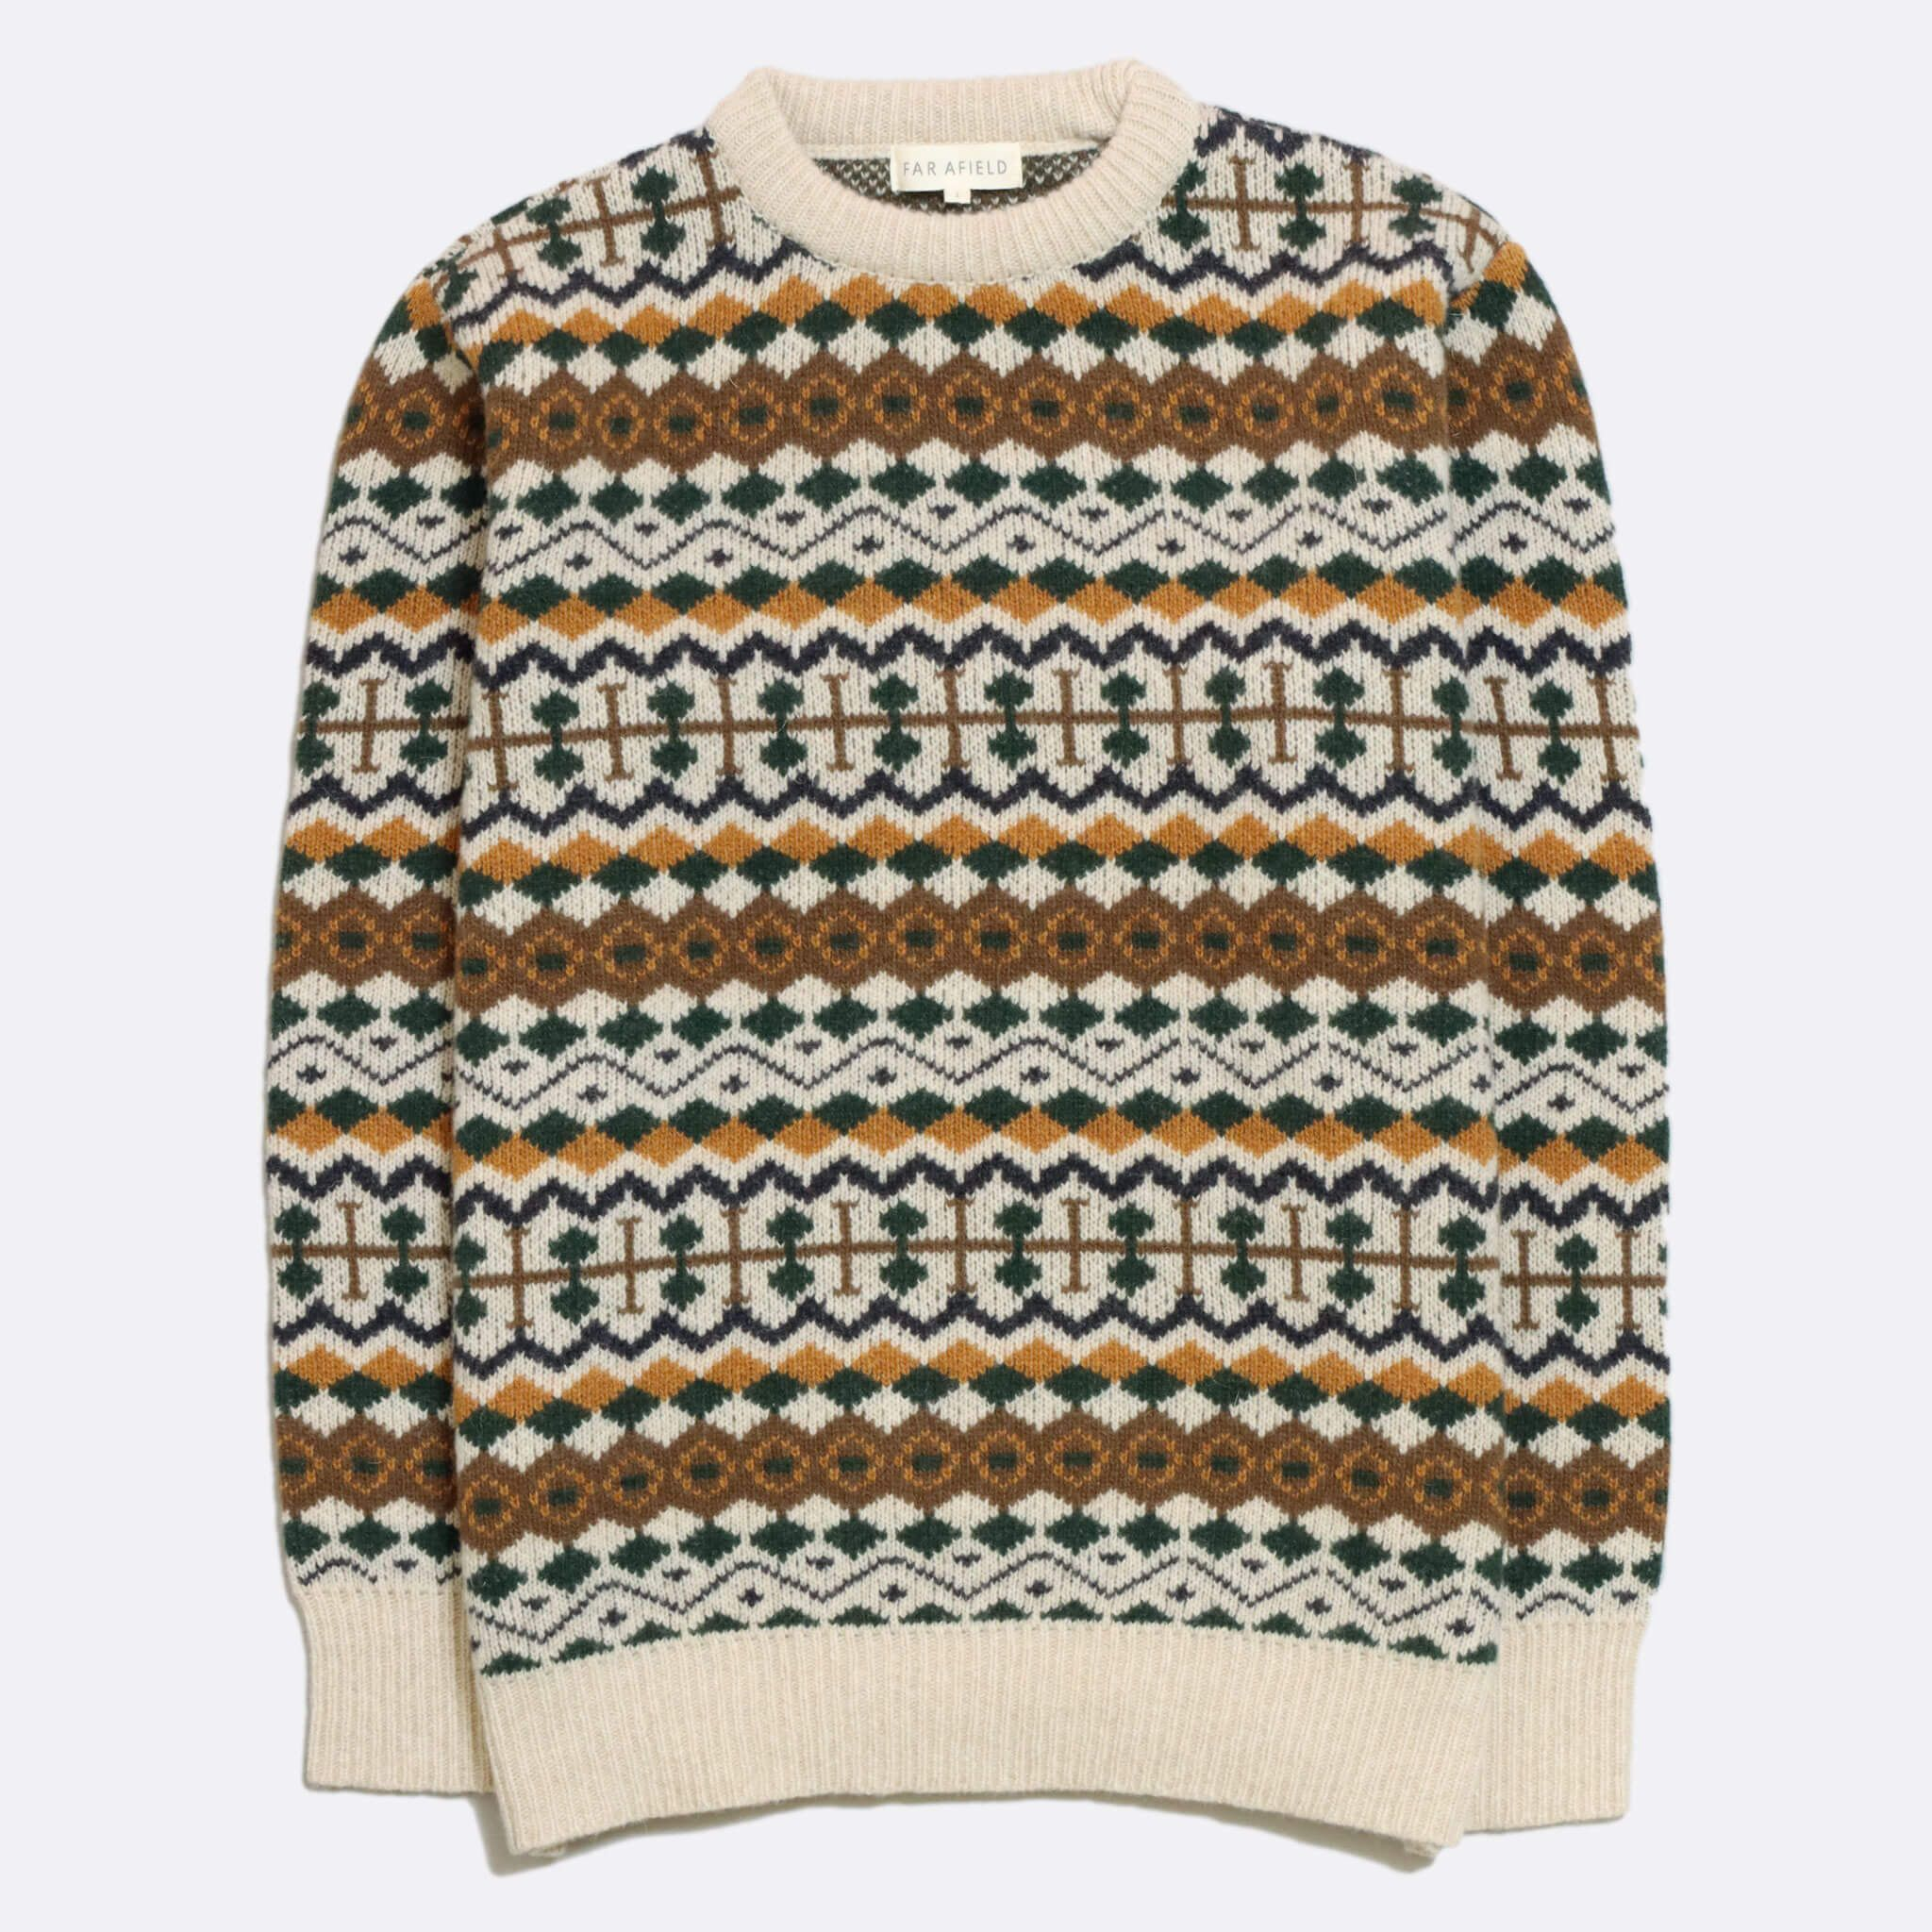 JERSEY FAR AFIELD WOOL FAIR ISLE BEIGE